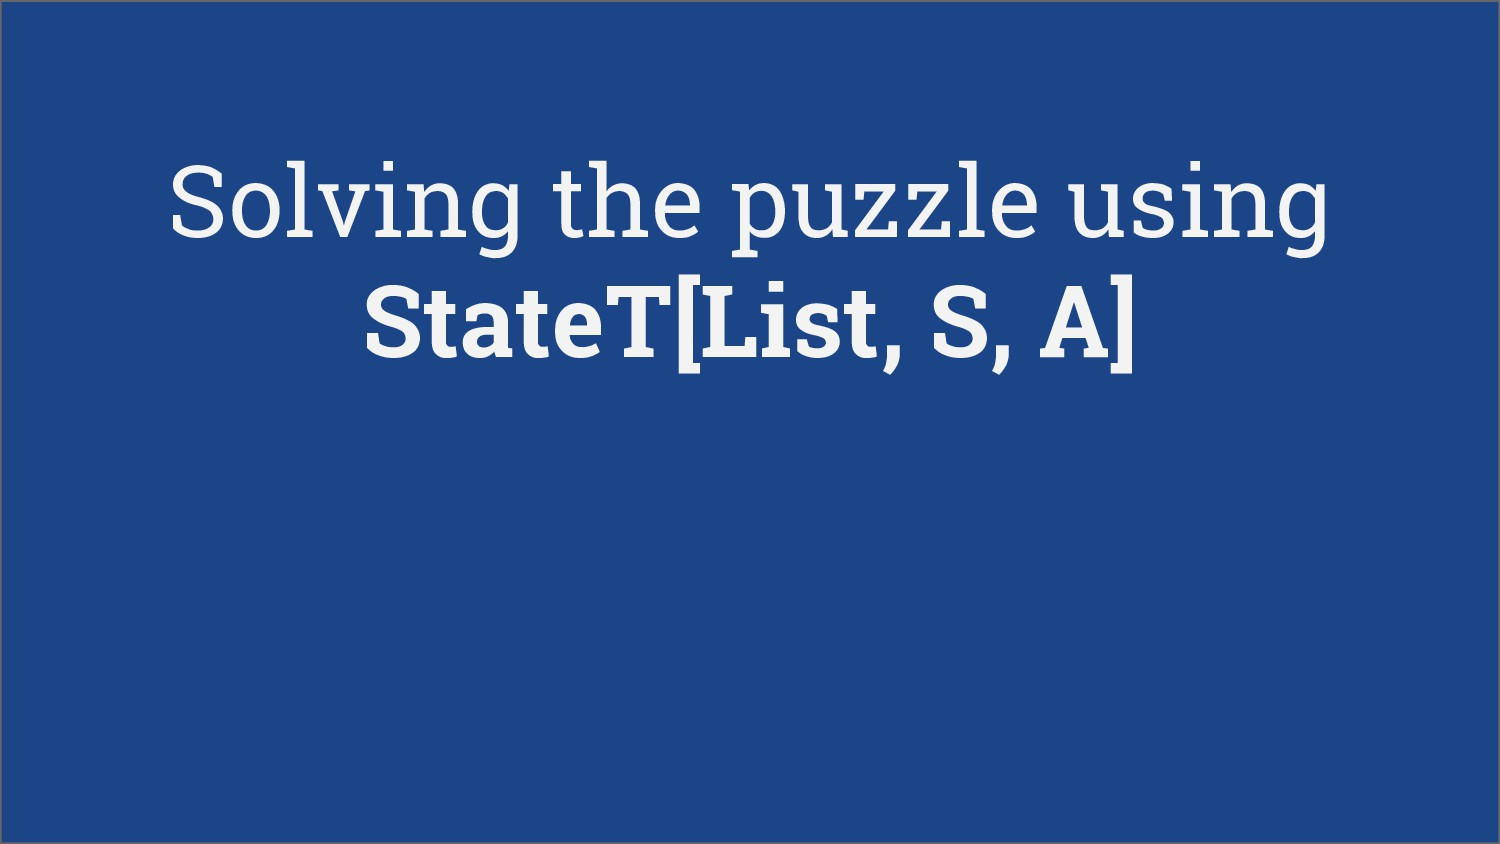 Solving the puzzle using StateT[List, S, A]